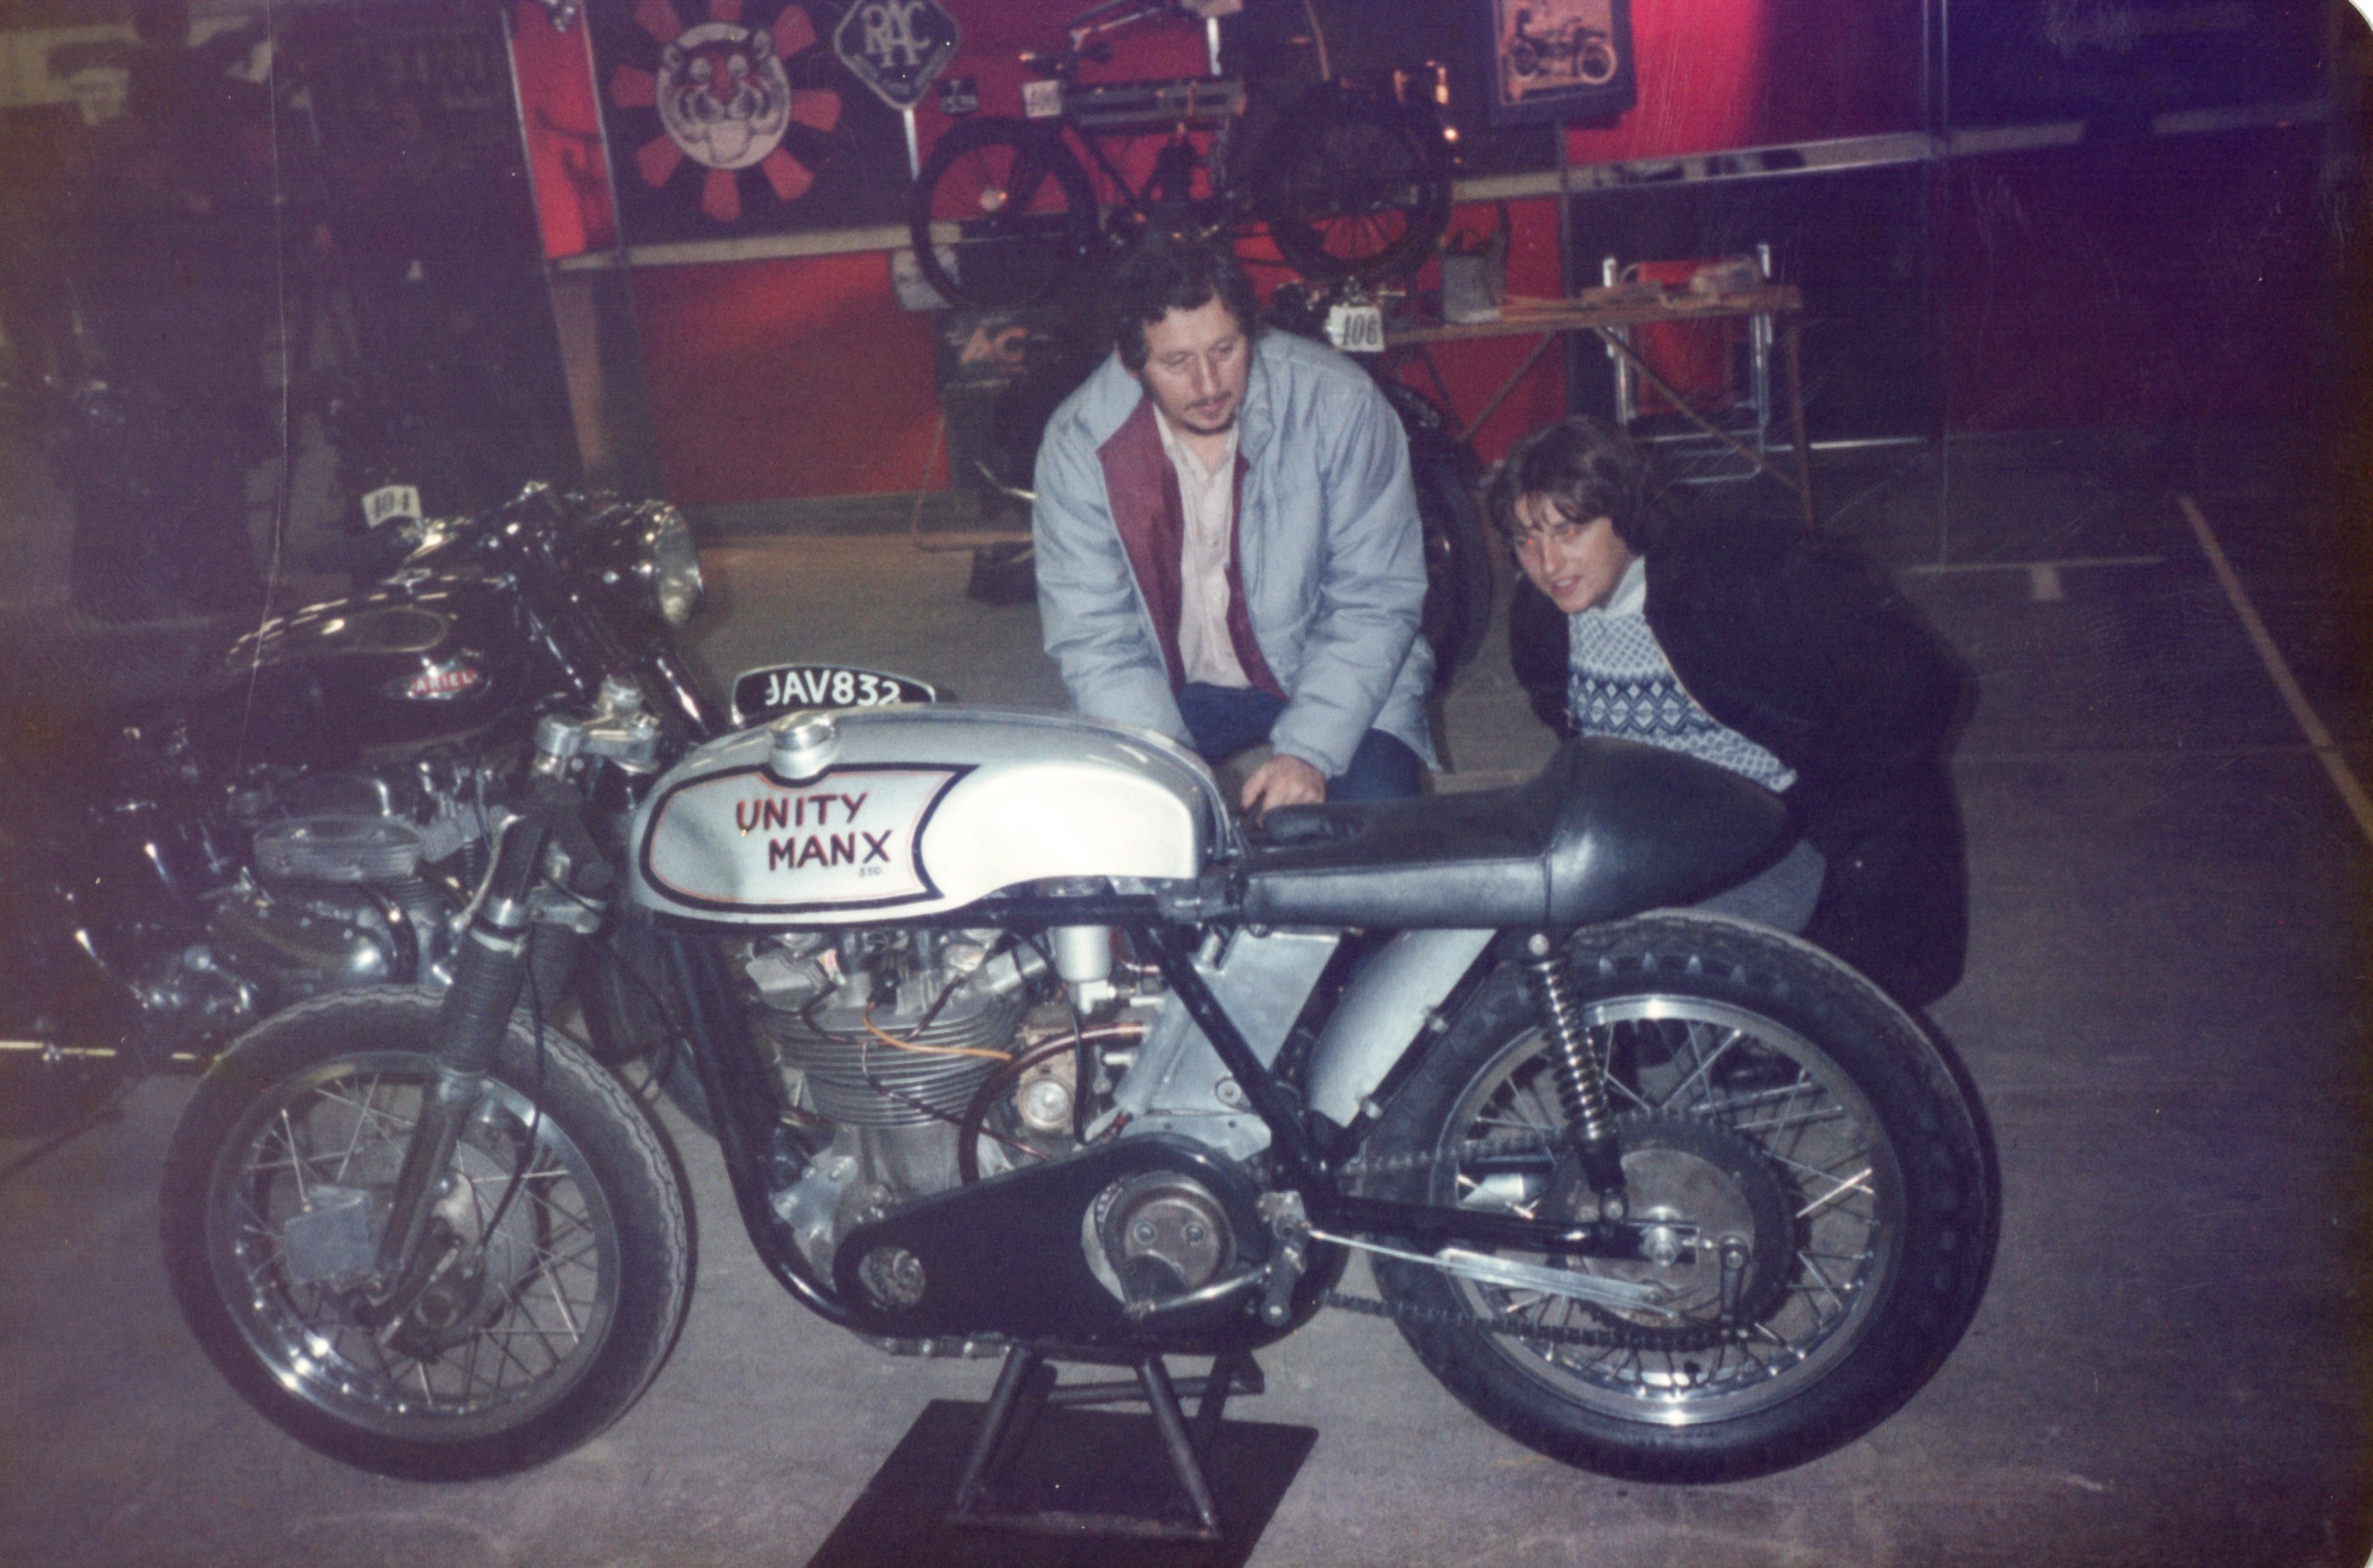 Two men looking at Pete's Unity Manx